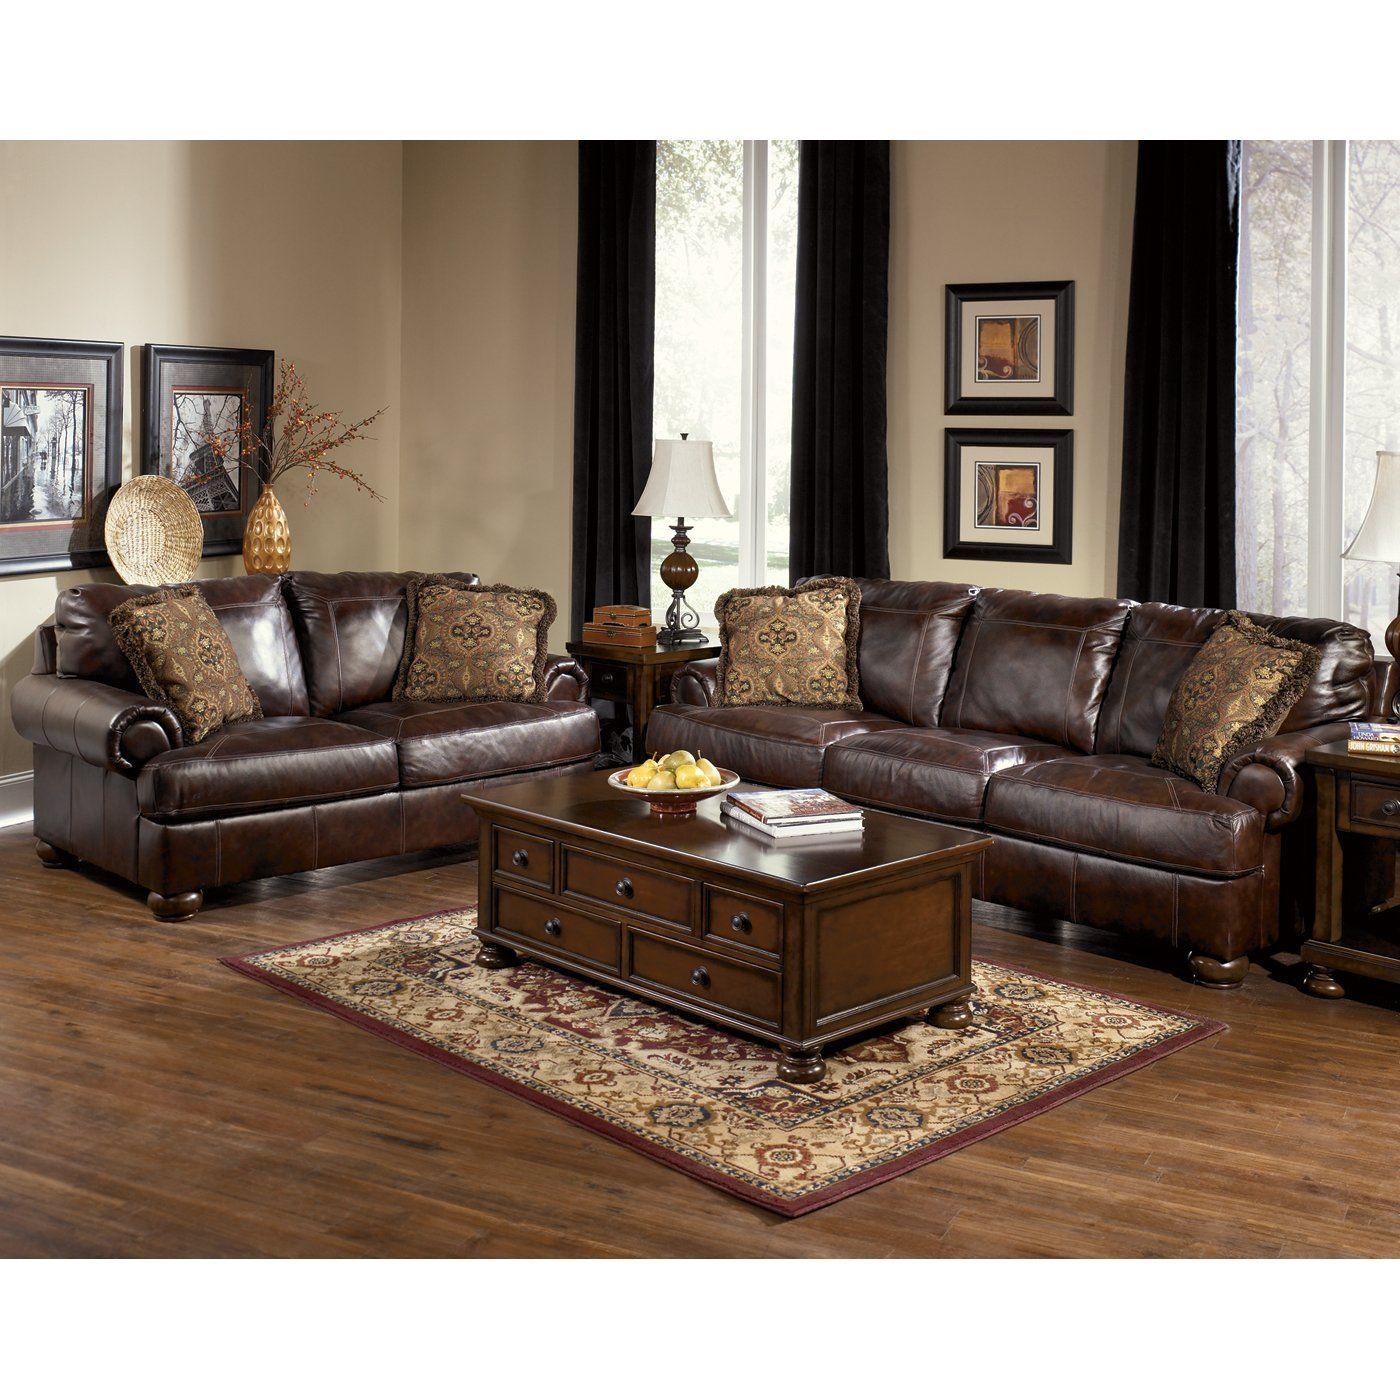 Signature Design By Ashley 4200038 35 Axiom Sofa Set Home